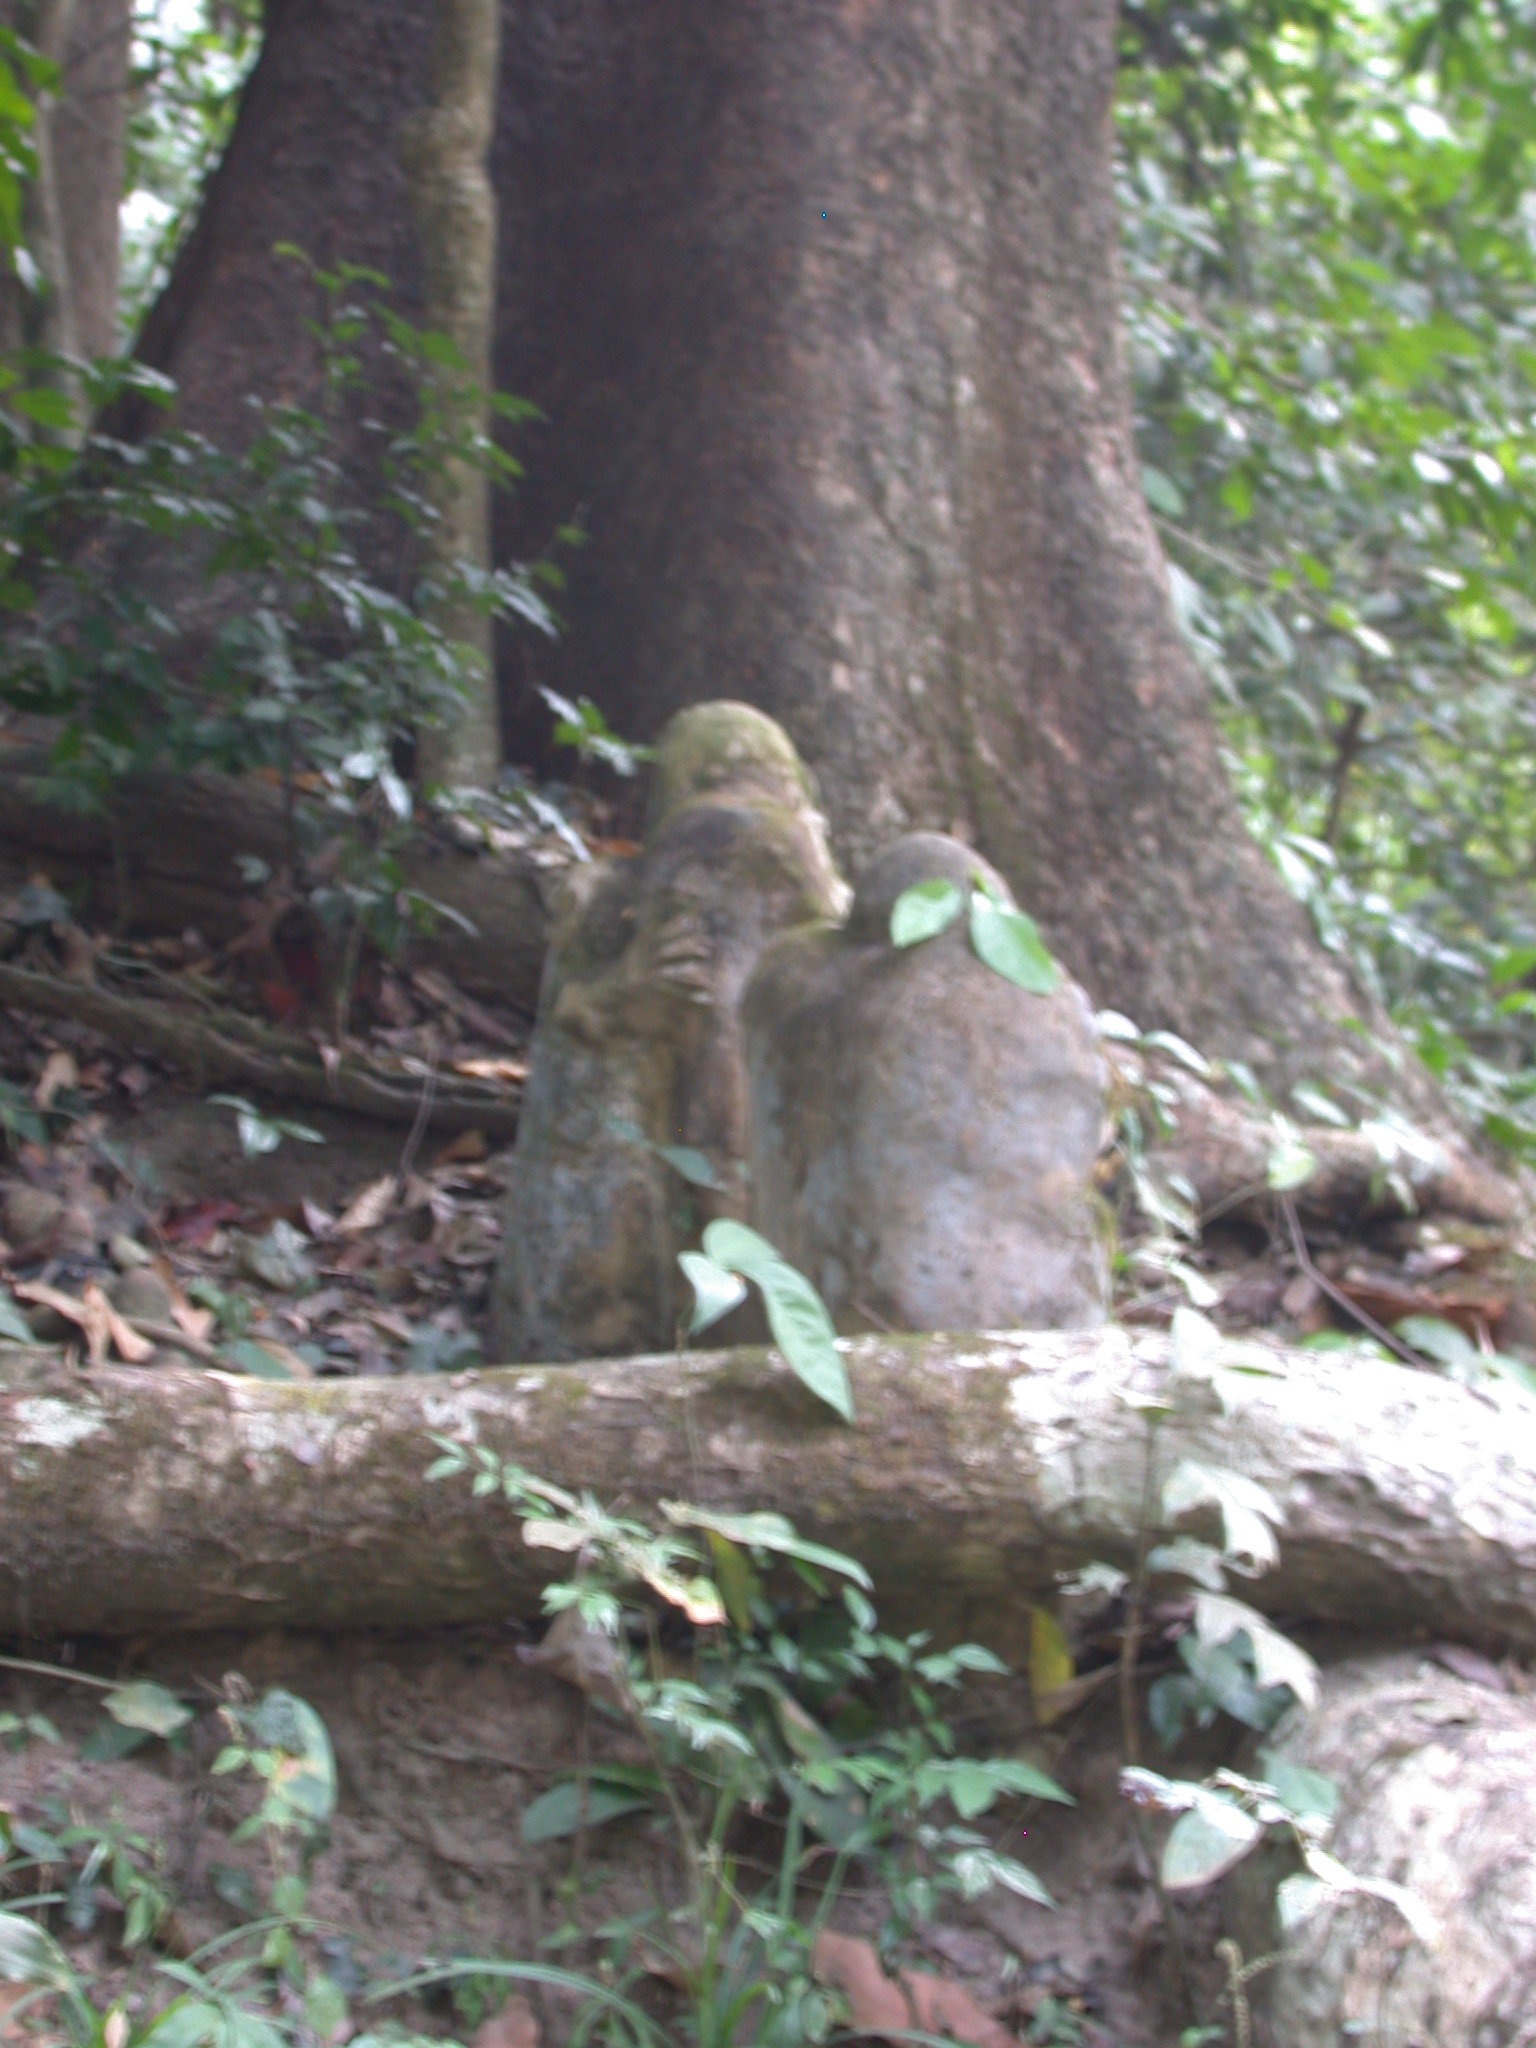 Sculpture Shrine by Osun River, Osun Sacred Grove, Oshogbo, Nigeria